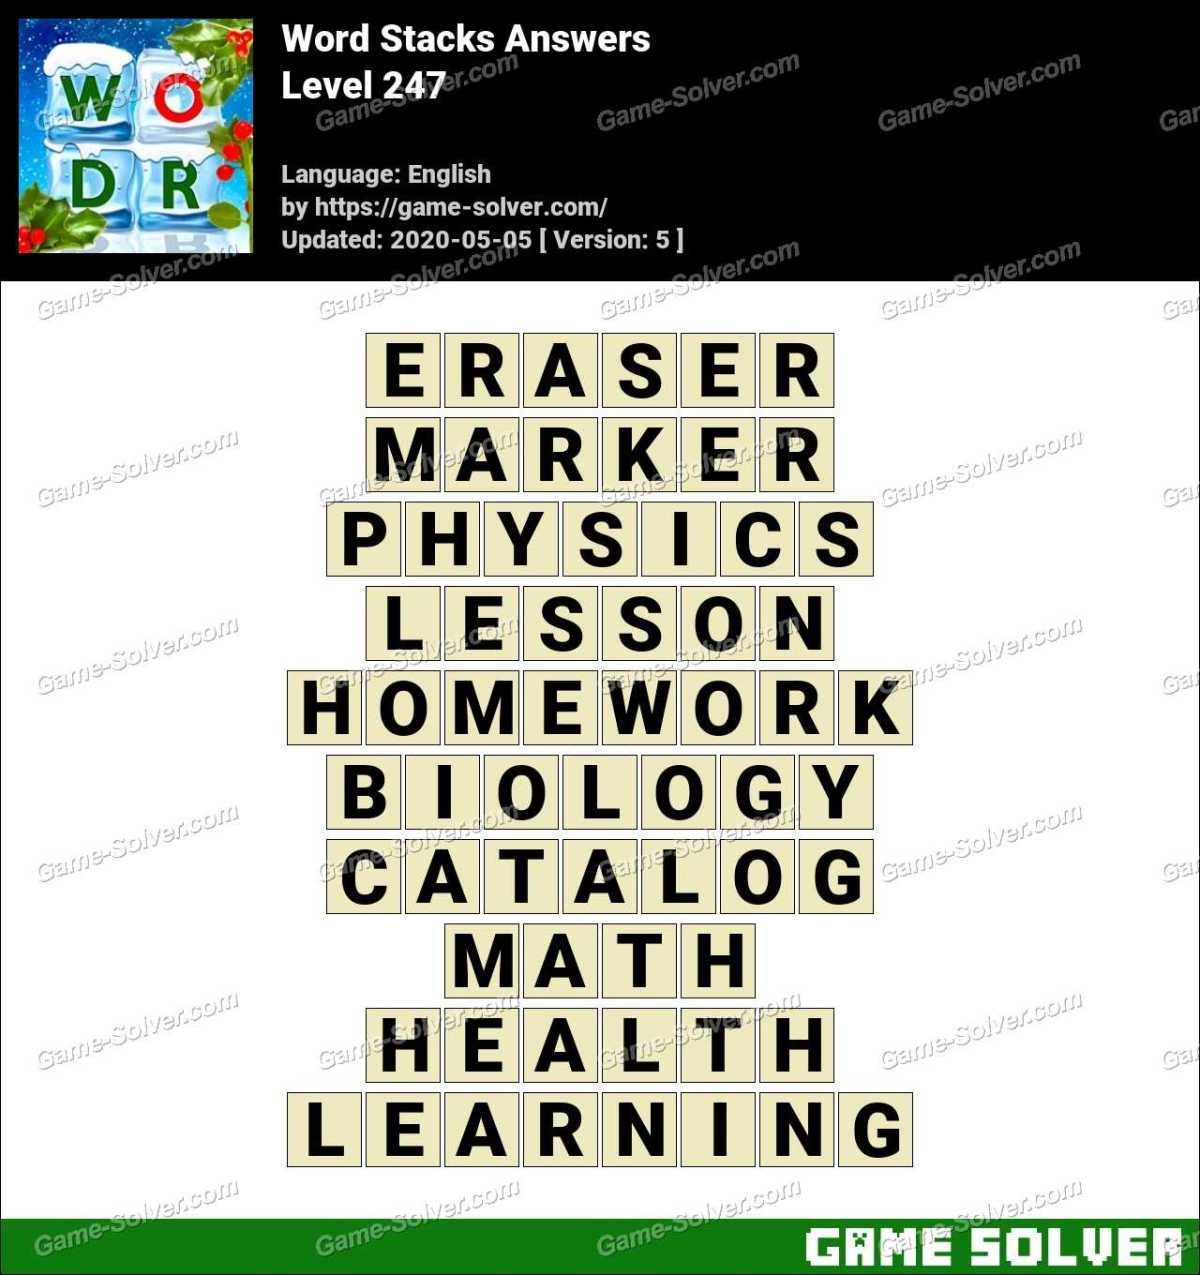 Word Stacks Level 247 Answers